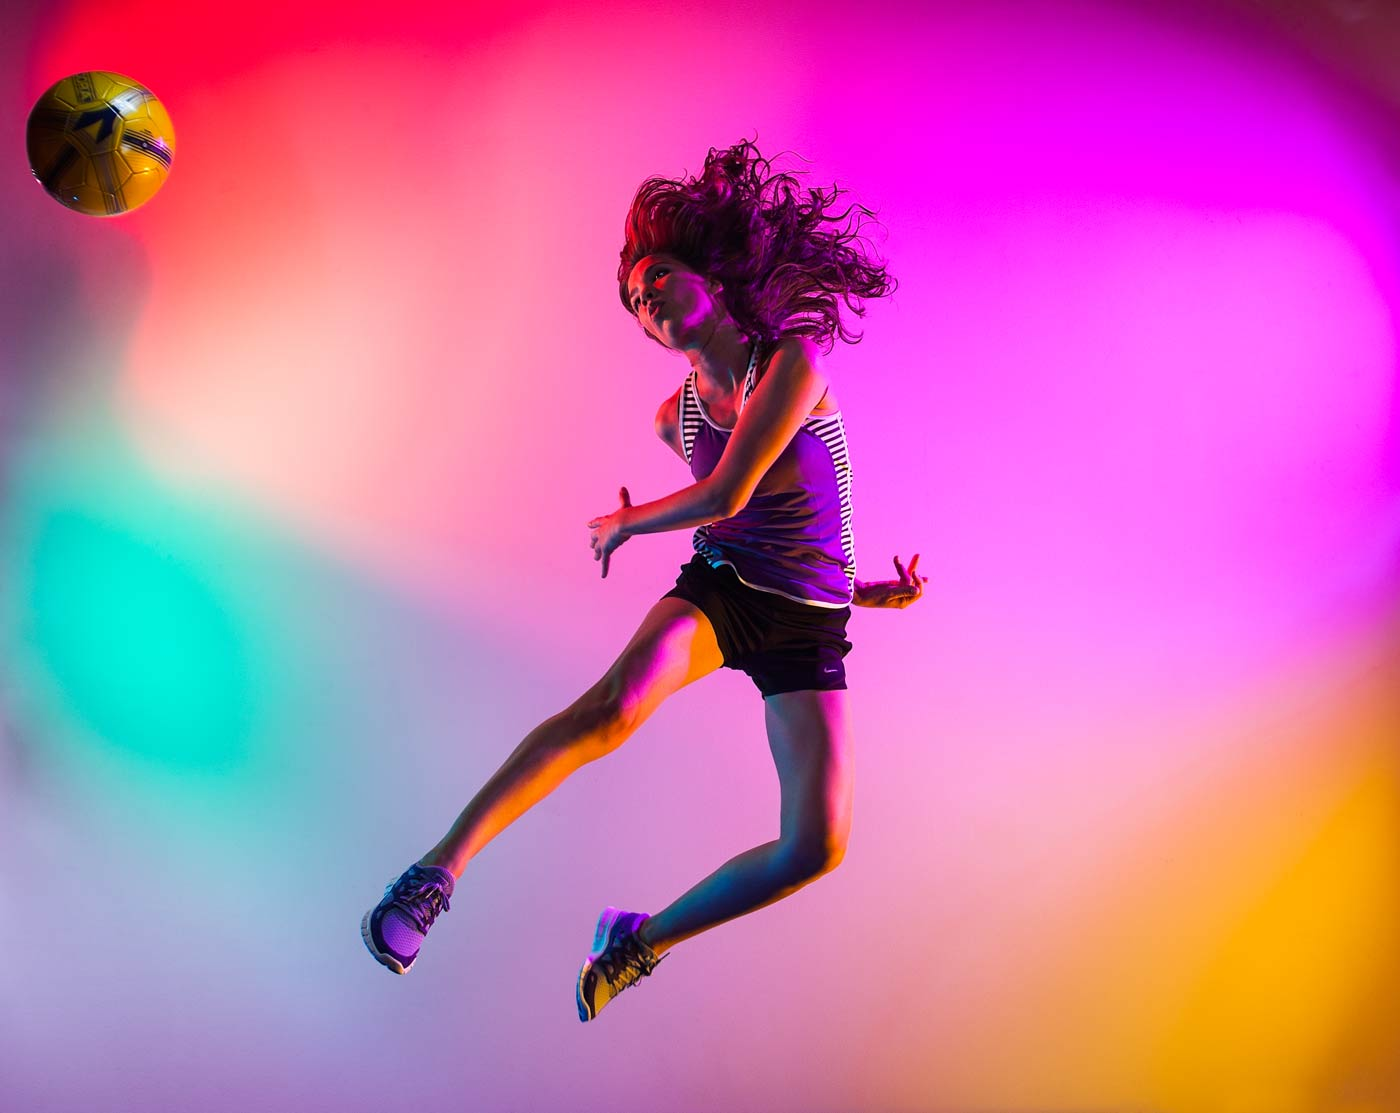 Commercial photography Portland - woman surrounded by color kicking a soccer ball